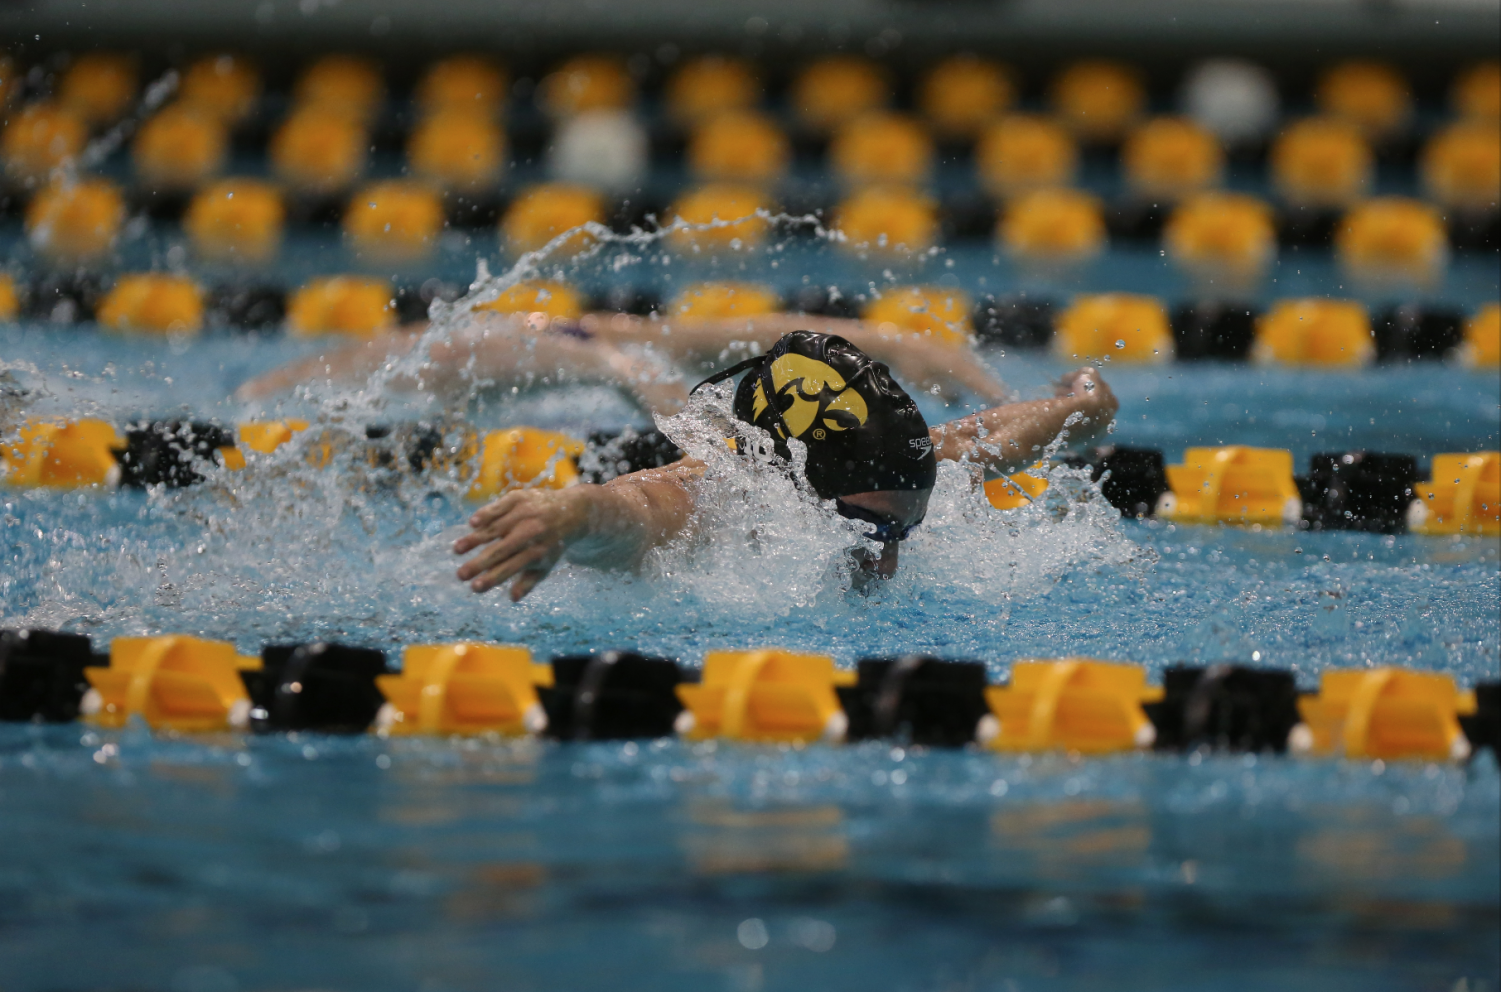 Iowa's Meghan Hackett swims in the Women's 100-meter fly during the Iowa-Northwestern meet at the Campus Recreation and Wellness Center on Saturday, Jan. 21, 2017. Hackett finished in first with a time of 57.47. The Hawkeyes defeated the Wildcats, 156-144.